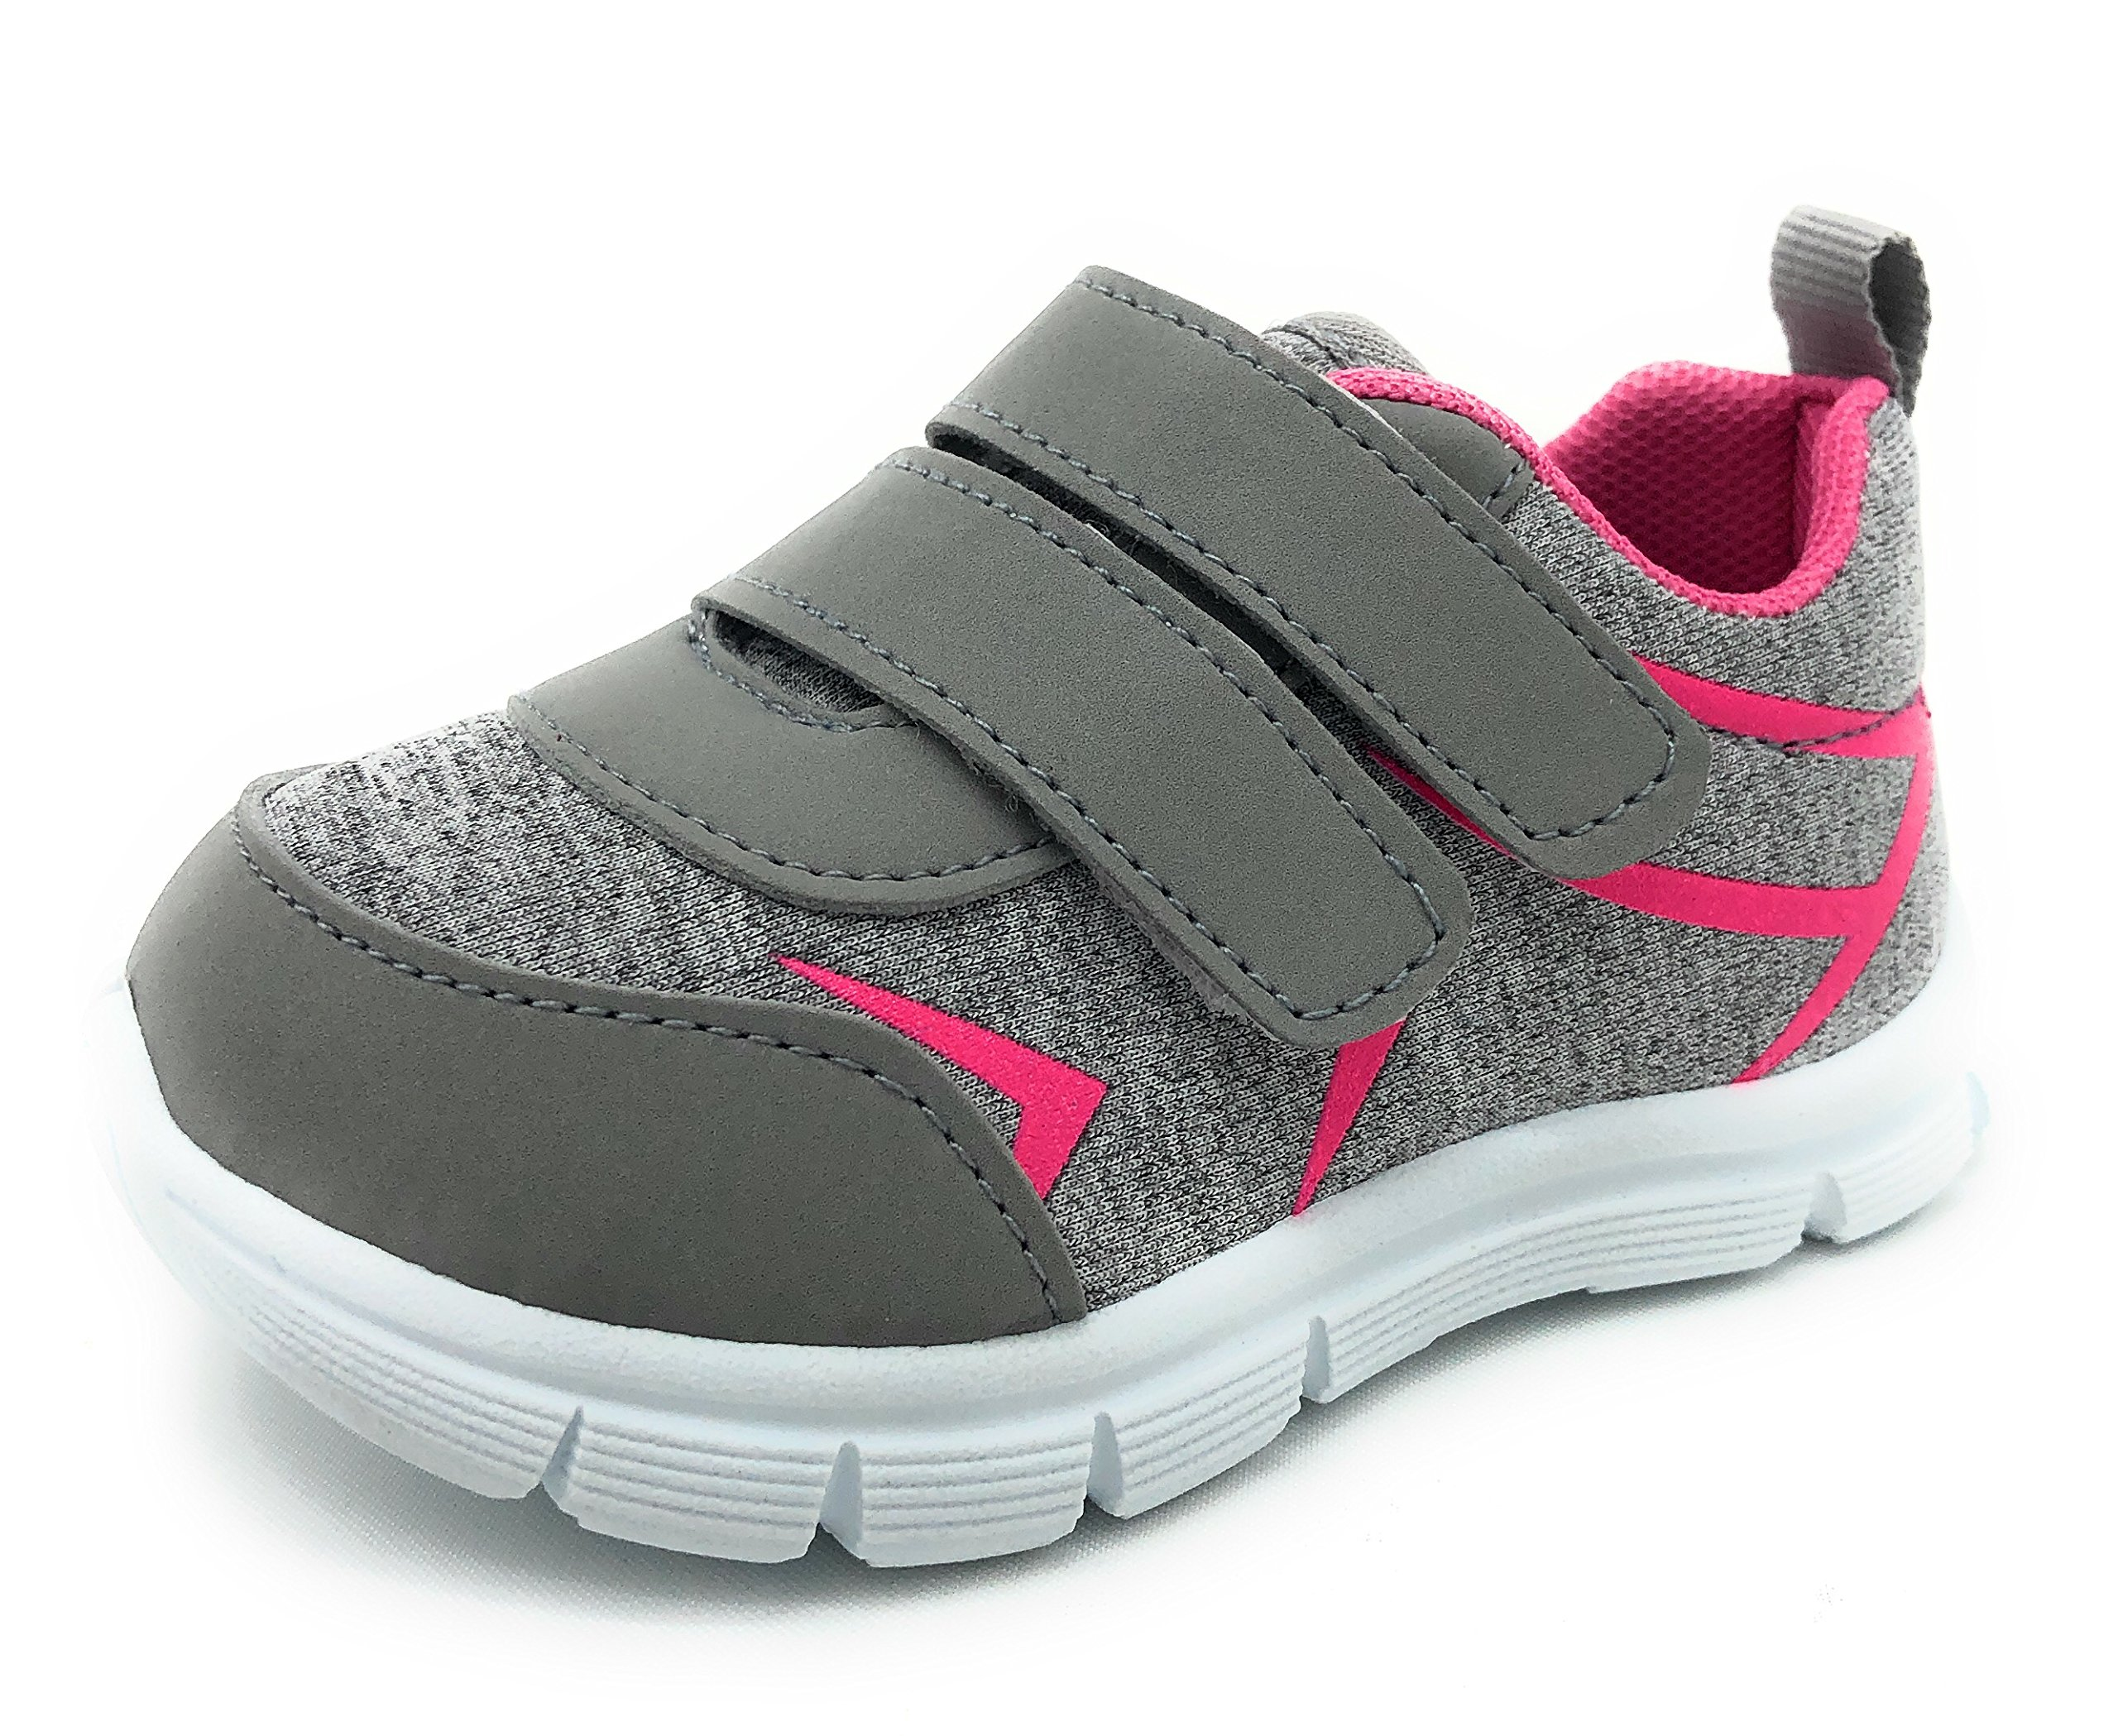 SOLE COLLECTION MYTH21 Kids Breathable Fashion Slip-On Athletic Sports Shoes,GREY1201,Size 4